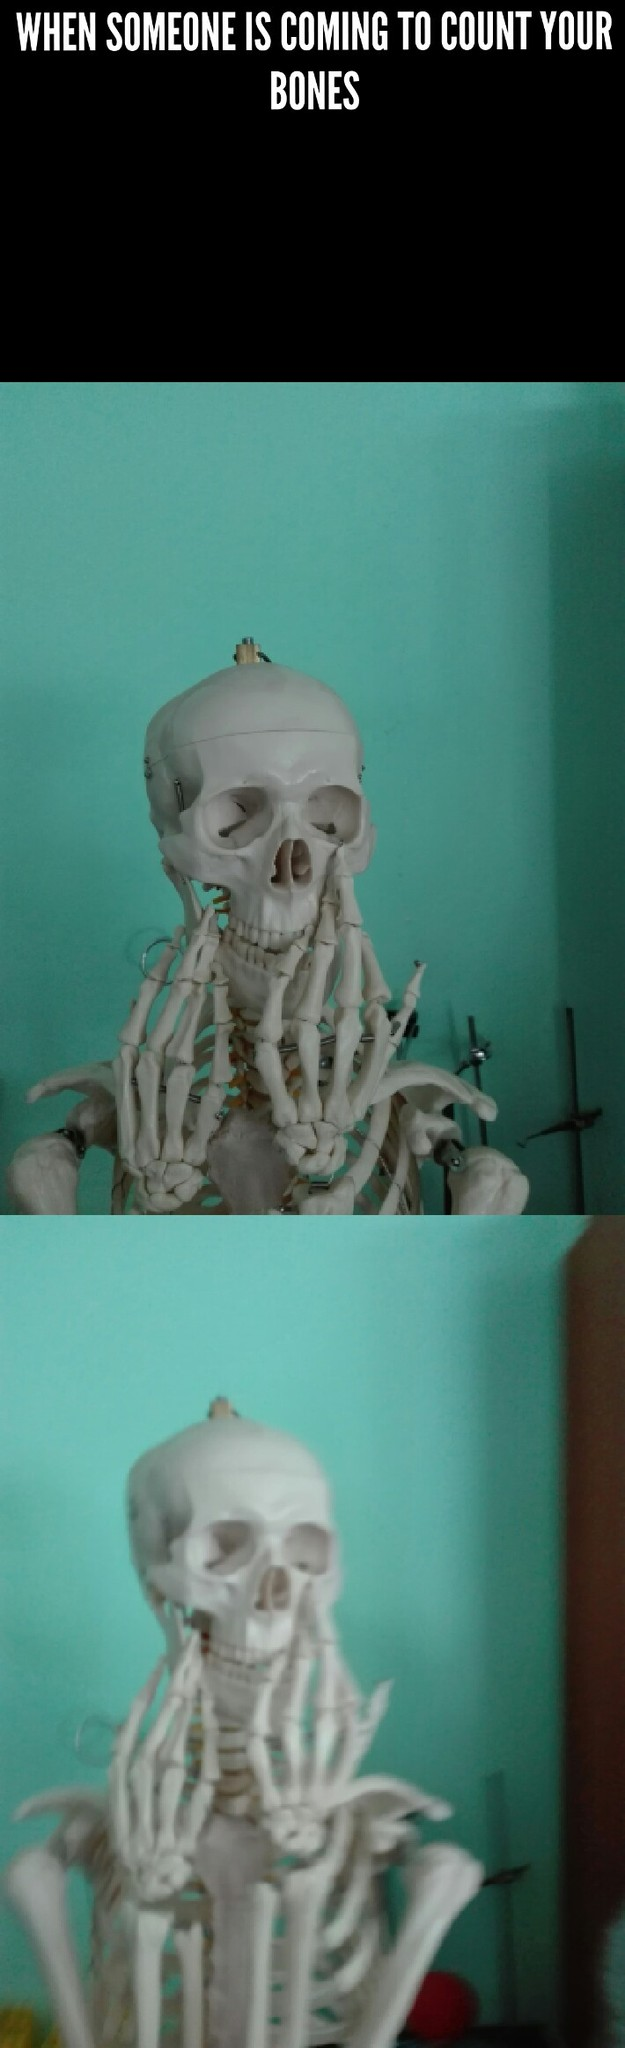 when someone is coming to count your bones - meme